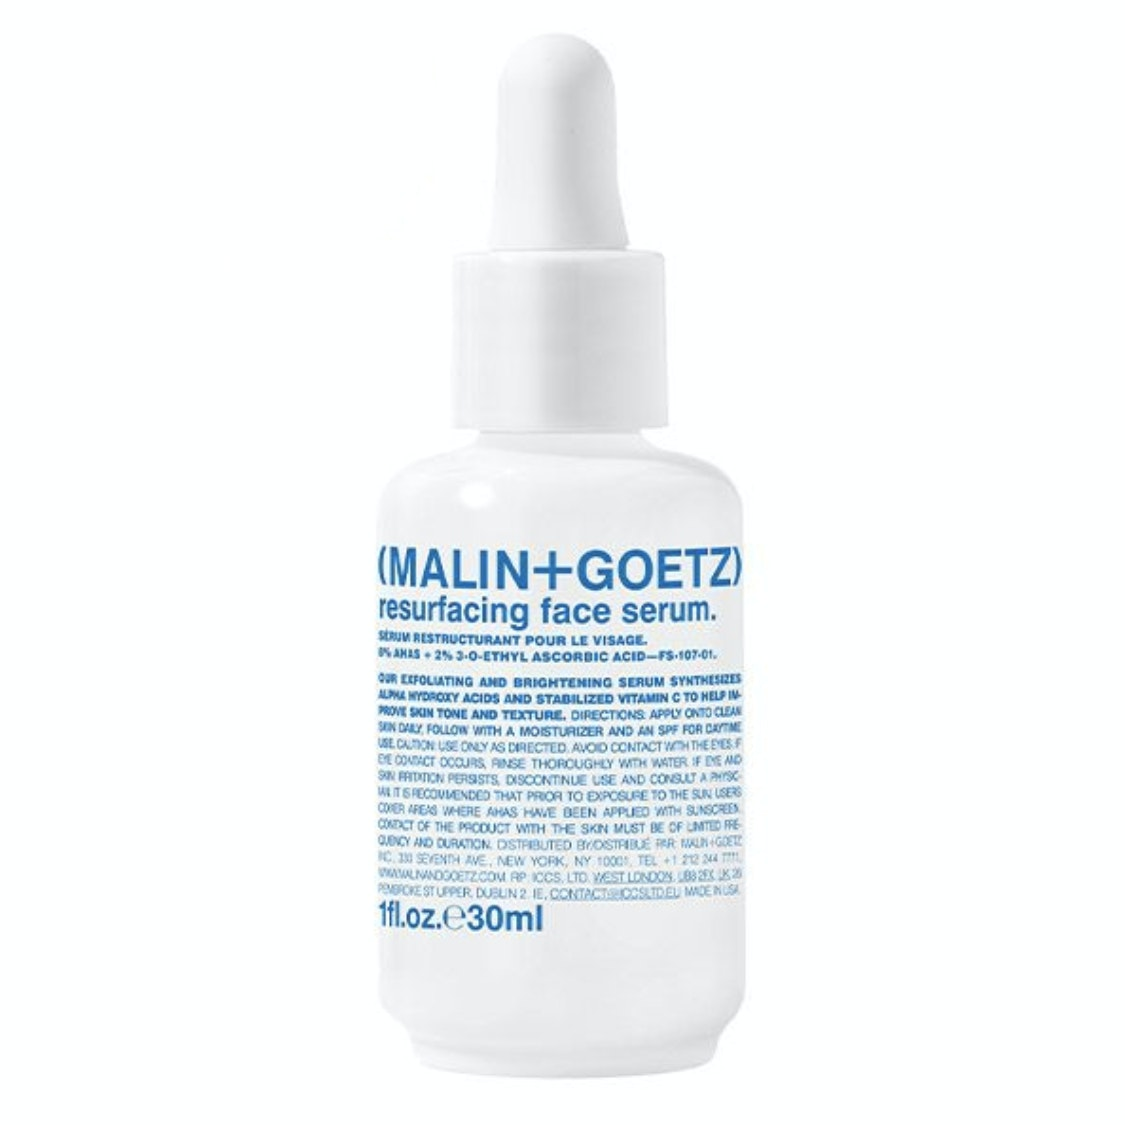 (Malin + Goetz)® Resurfacing Face Serum™